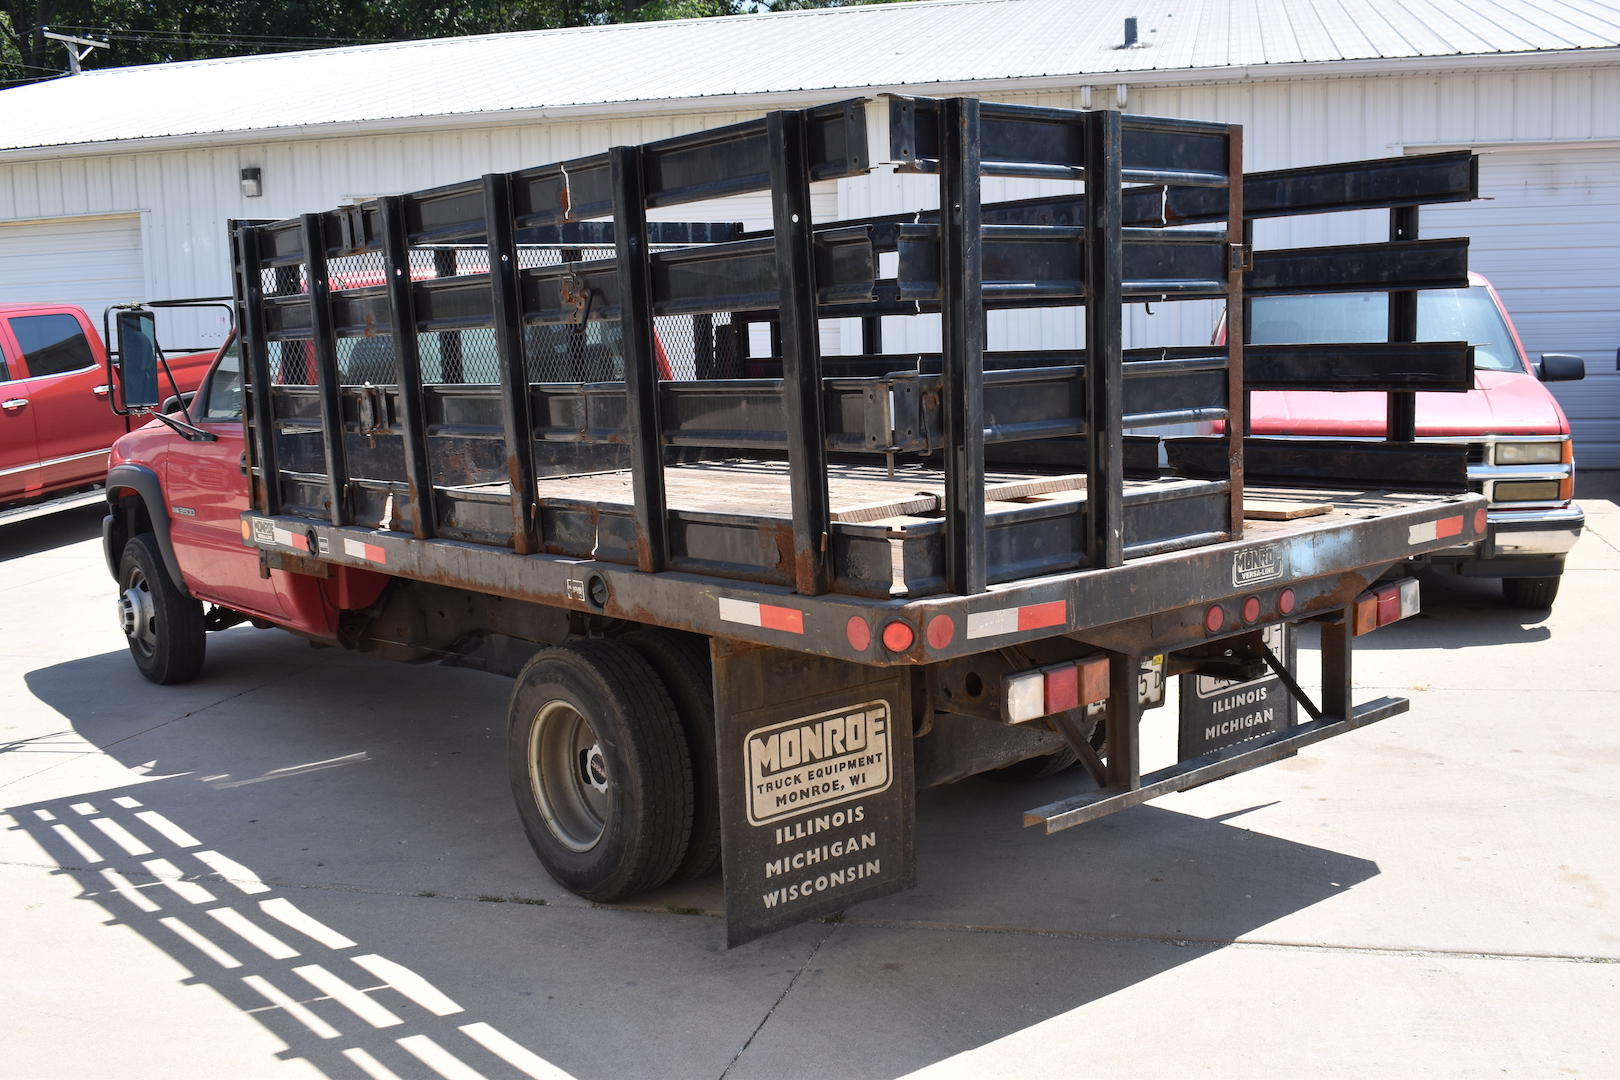 Lot 63 - 2005 GMC 3500 Single-Axle Stake Bed Truck, VIN 1GDJC34UX5E344645, 12 ft. (approx.) Bed, Vortec 6.